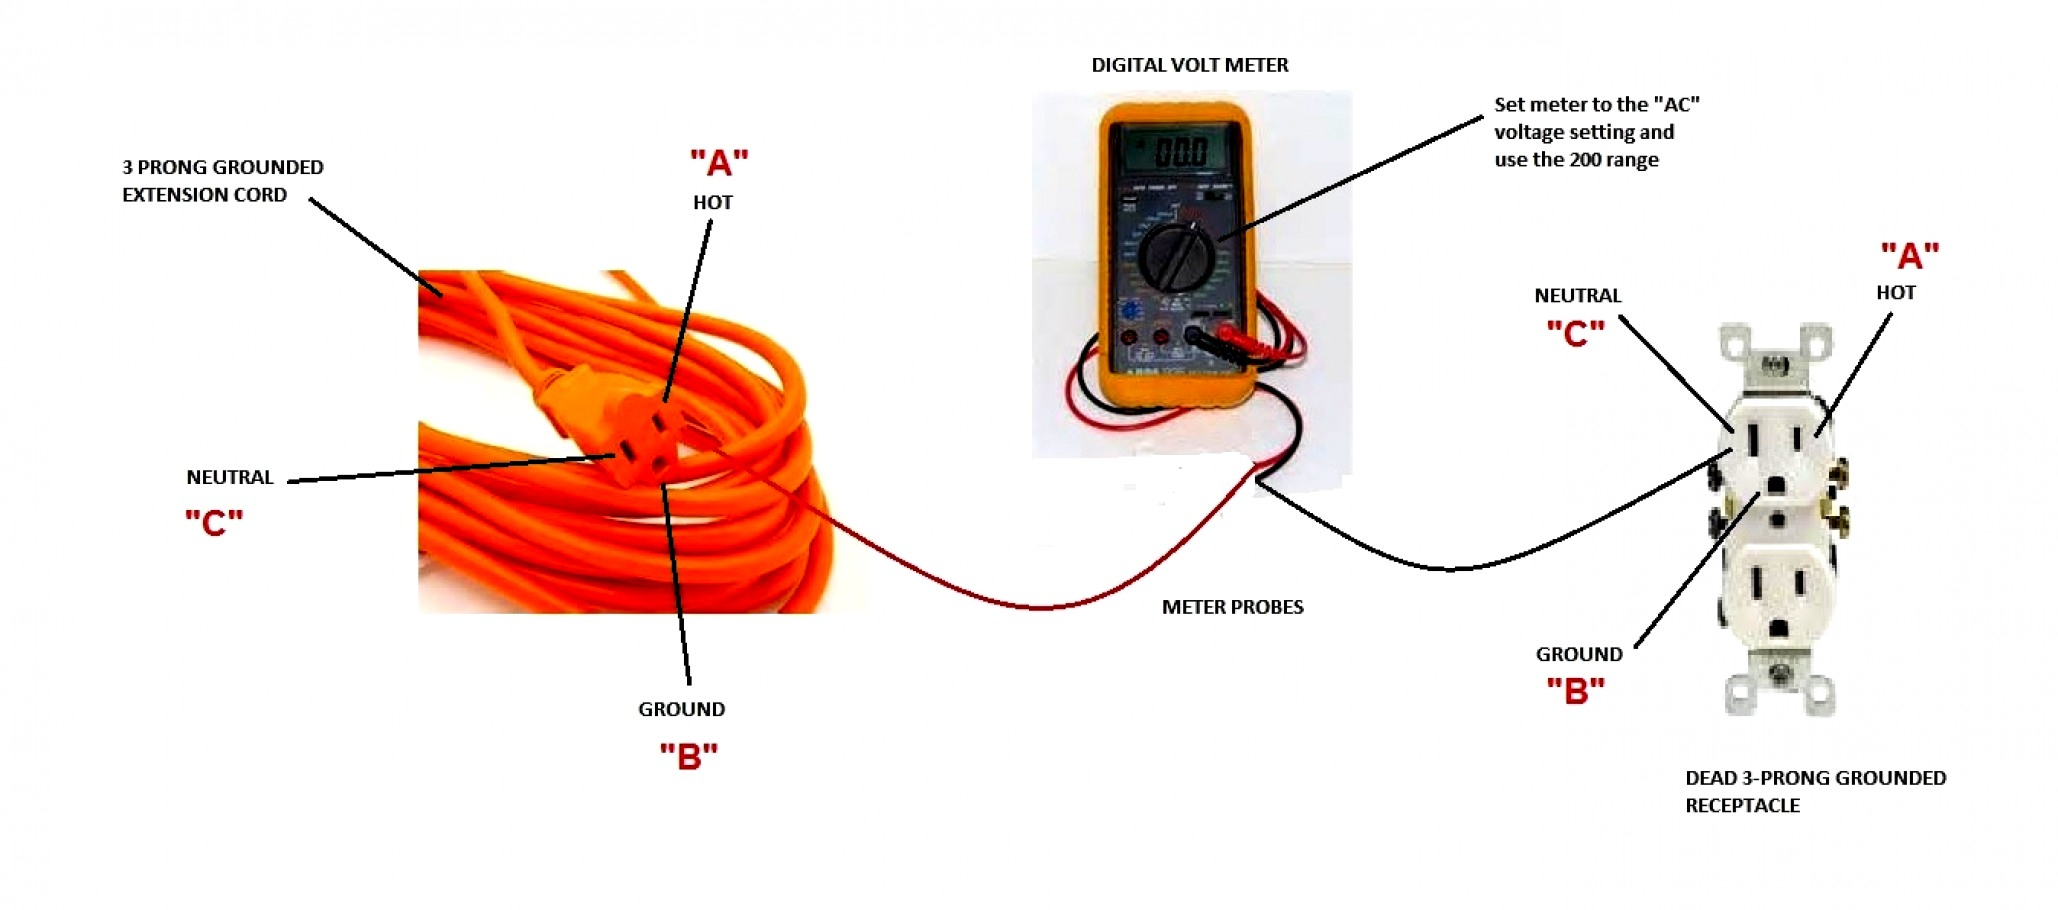 3 Prong Extension Cord Wiring Diagram - Wiring Data Diagram - 3 Prong Extension Cord Wiring Diagram